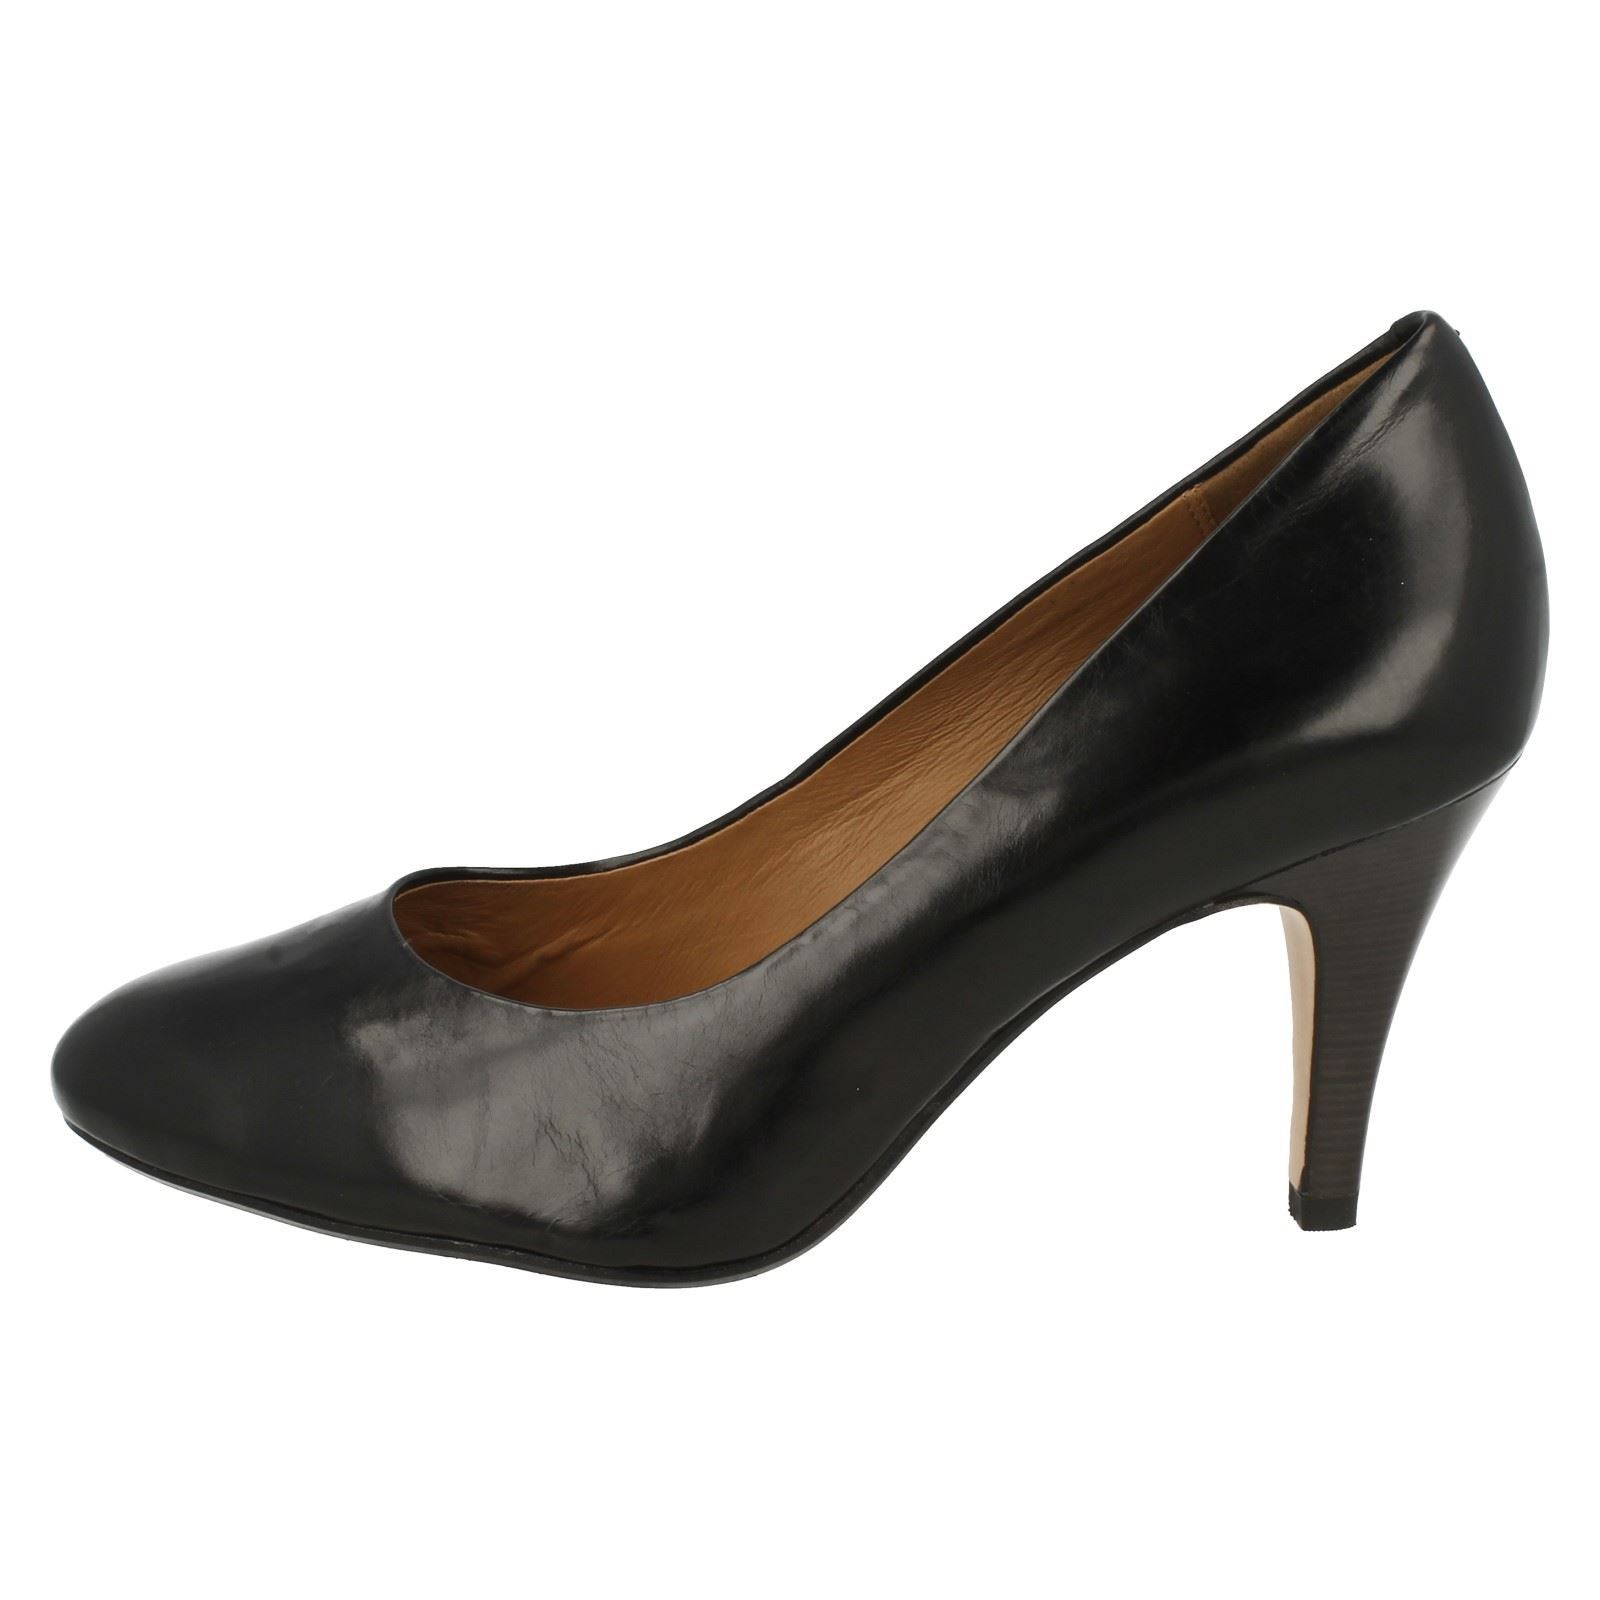 damas 'clifton Smart Bridge' Negro Court para Clarks Zapatos fqZvXHwIx